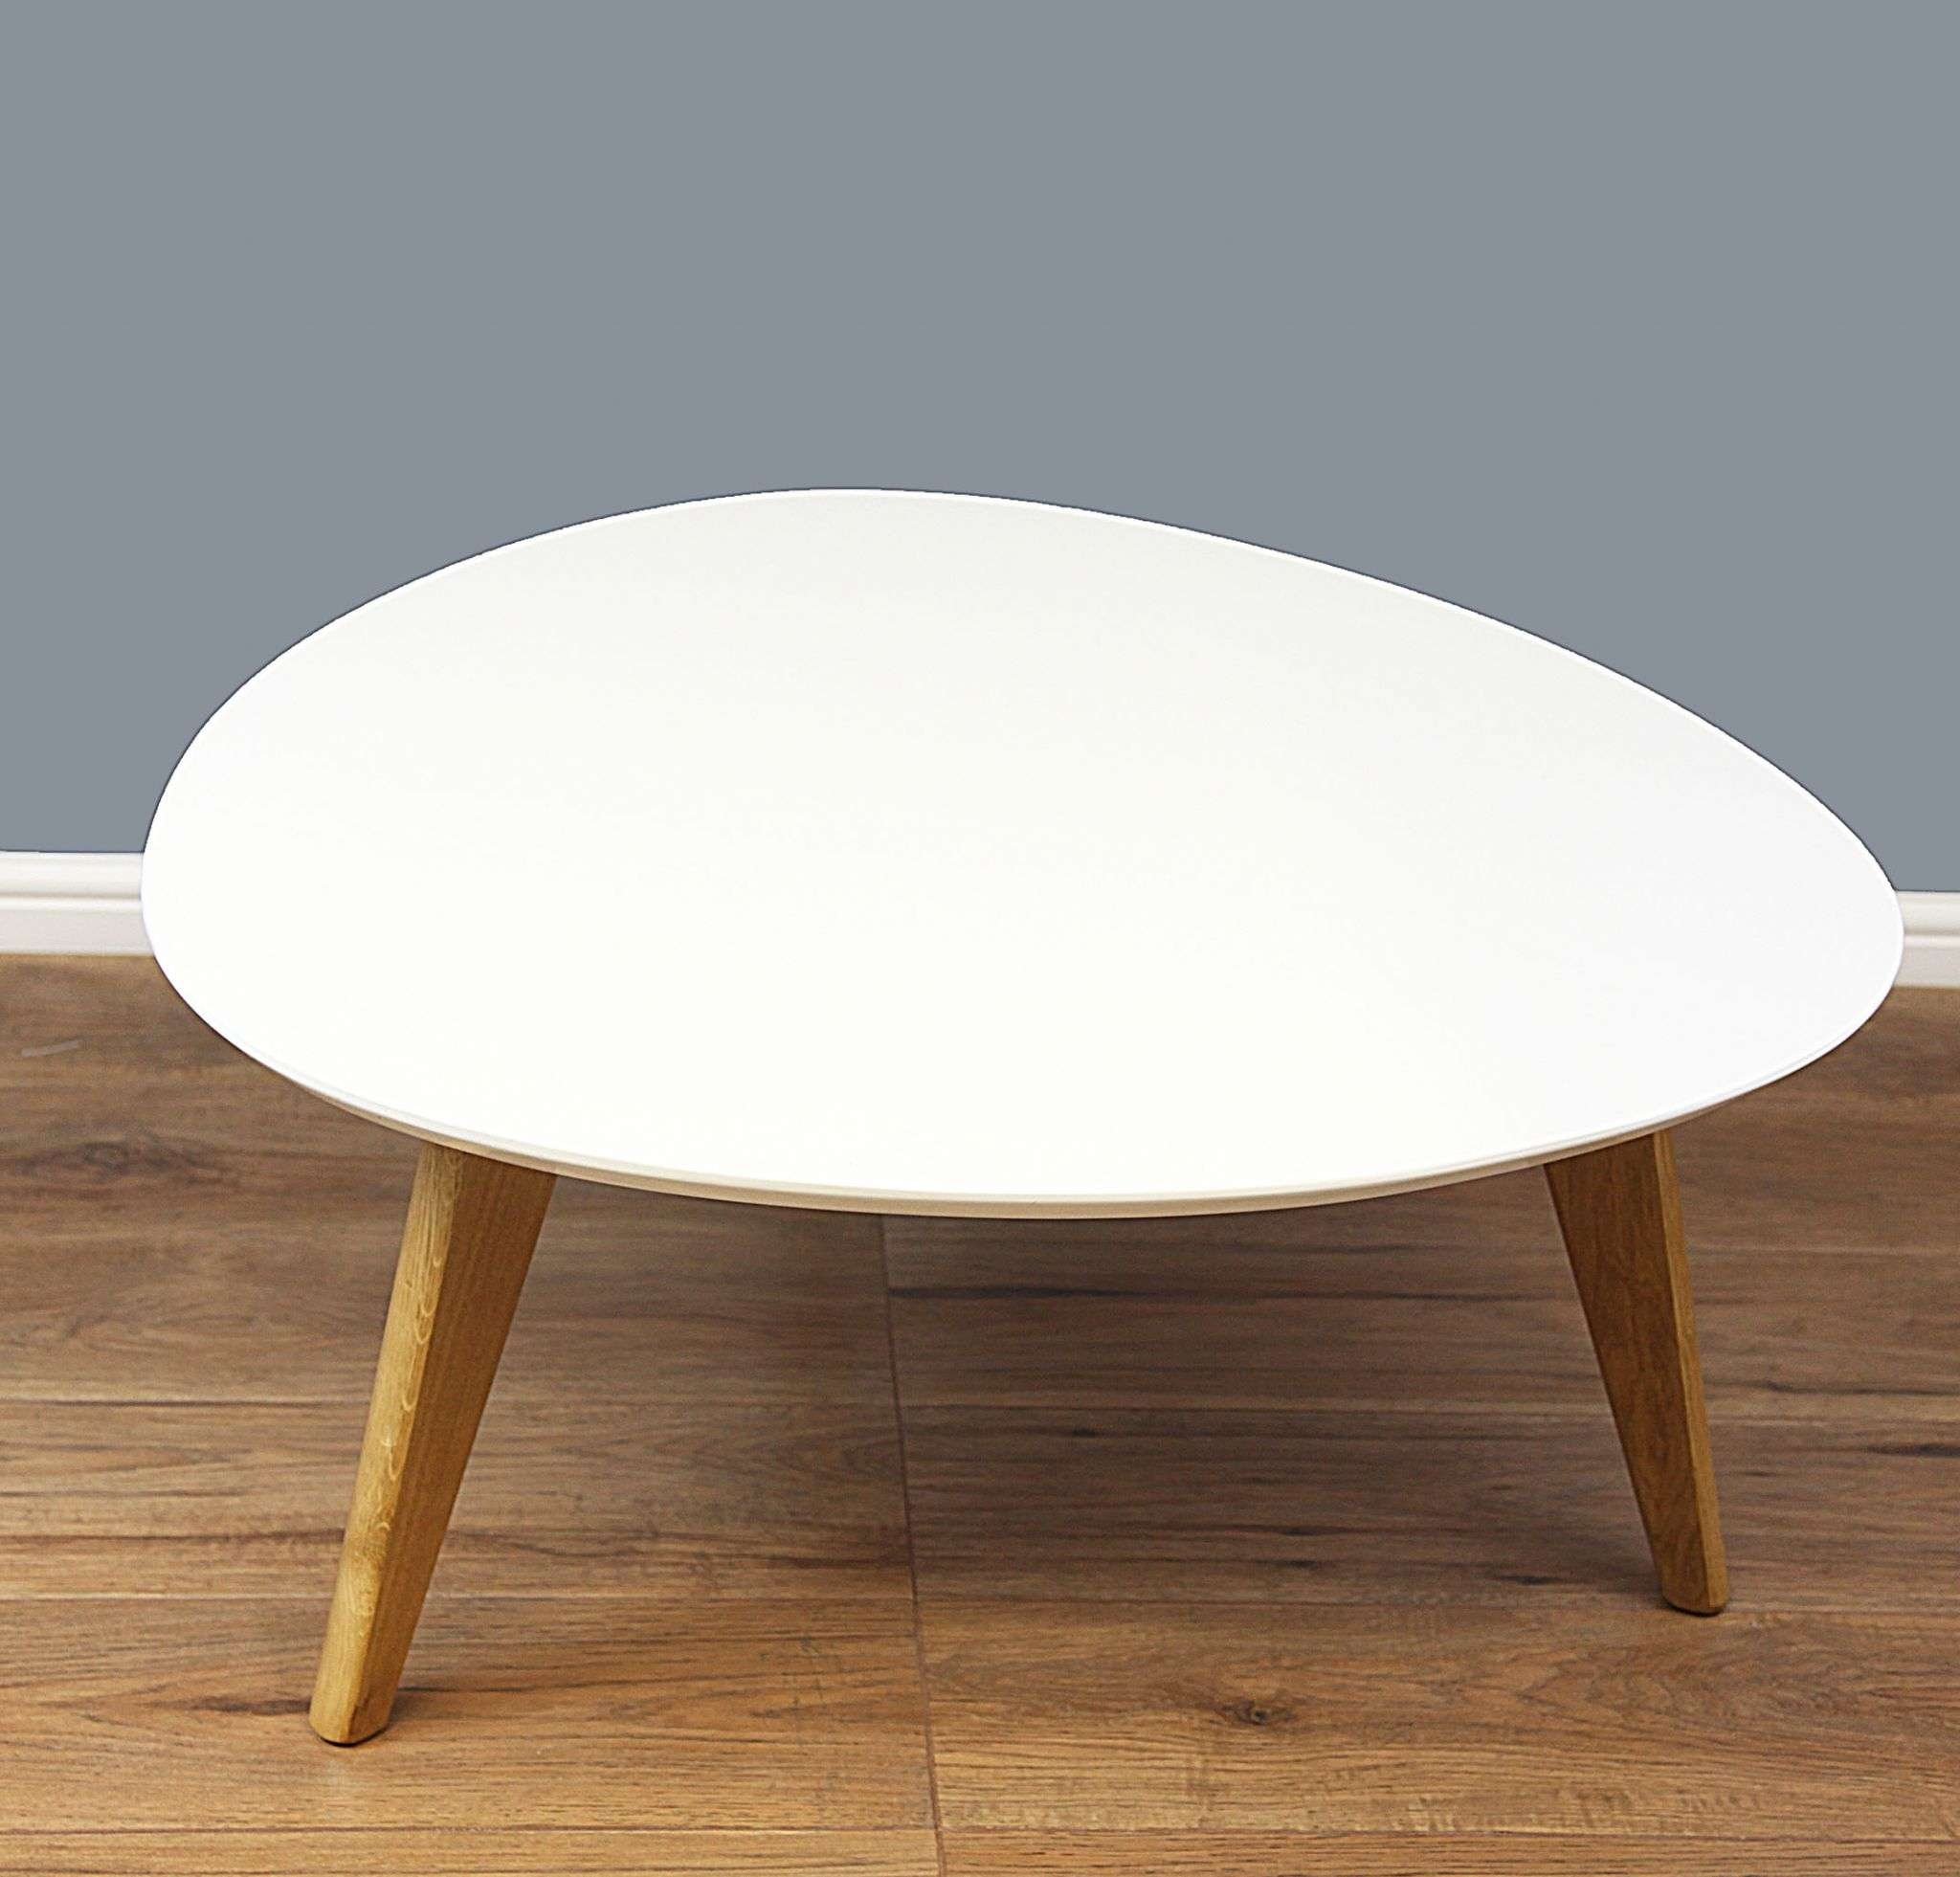 Most Popular White Circle Coffee Tables Pertaining To Coffee Tables : White Coffee Table Canada Glass Antique Round With (View 16 of 20)